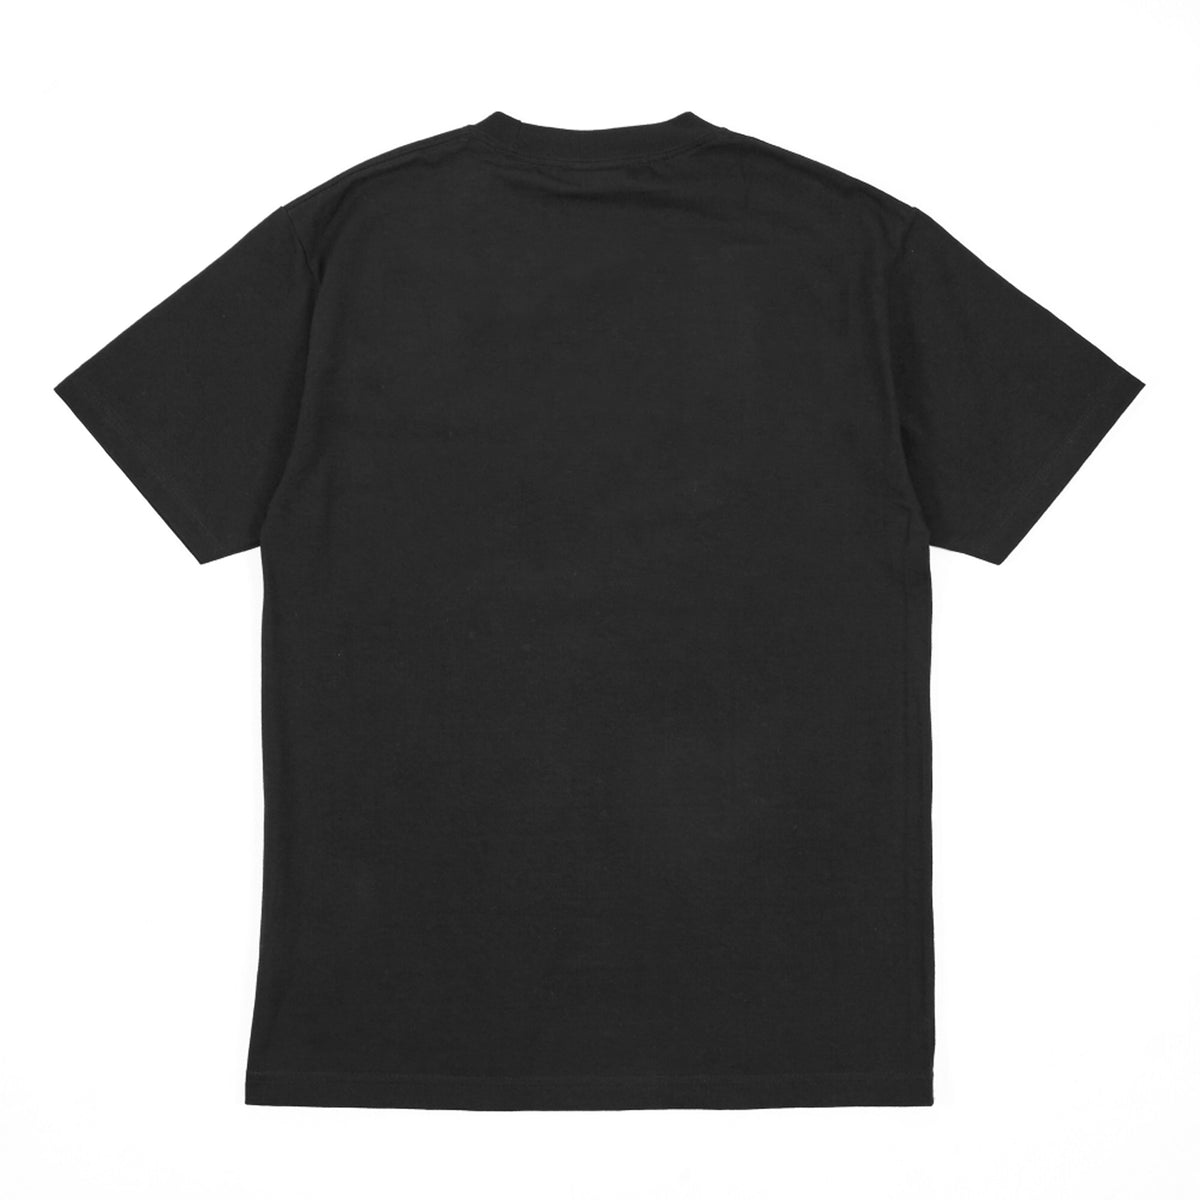 FACTORY DEALER - S/S TEE - BLACK